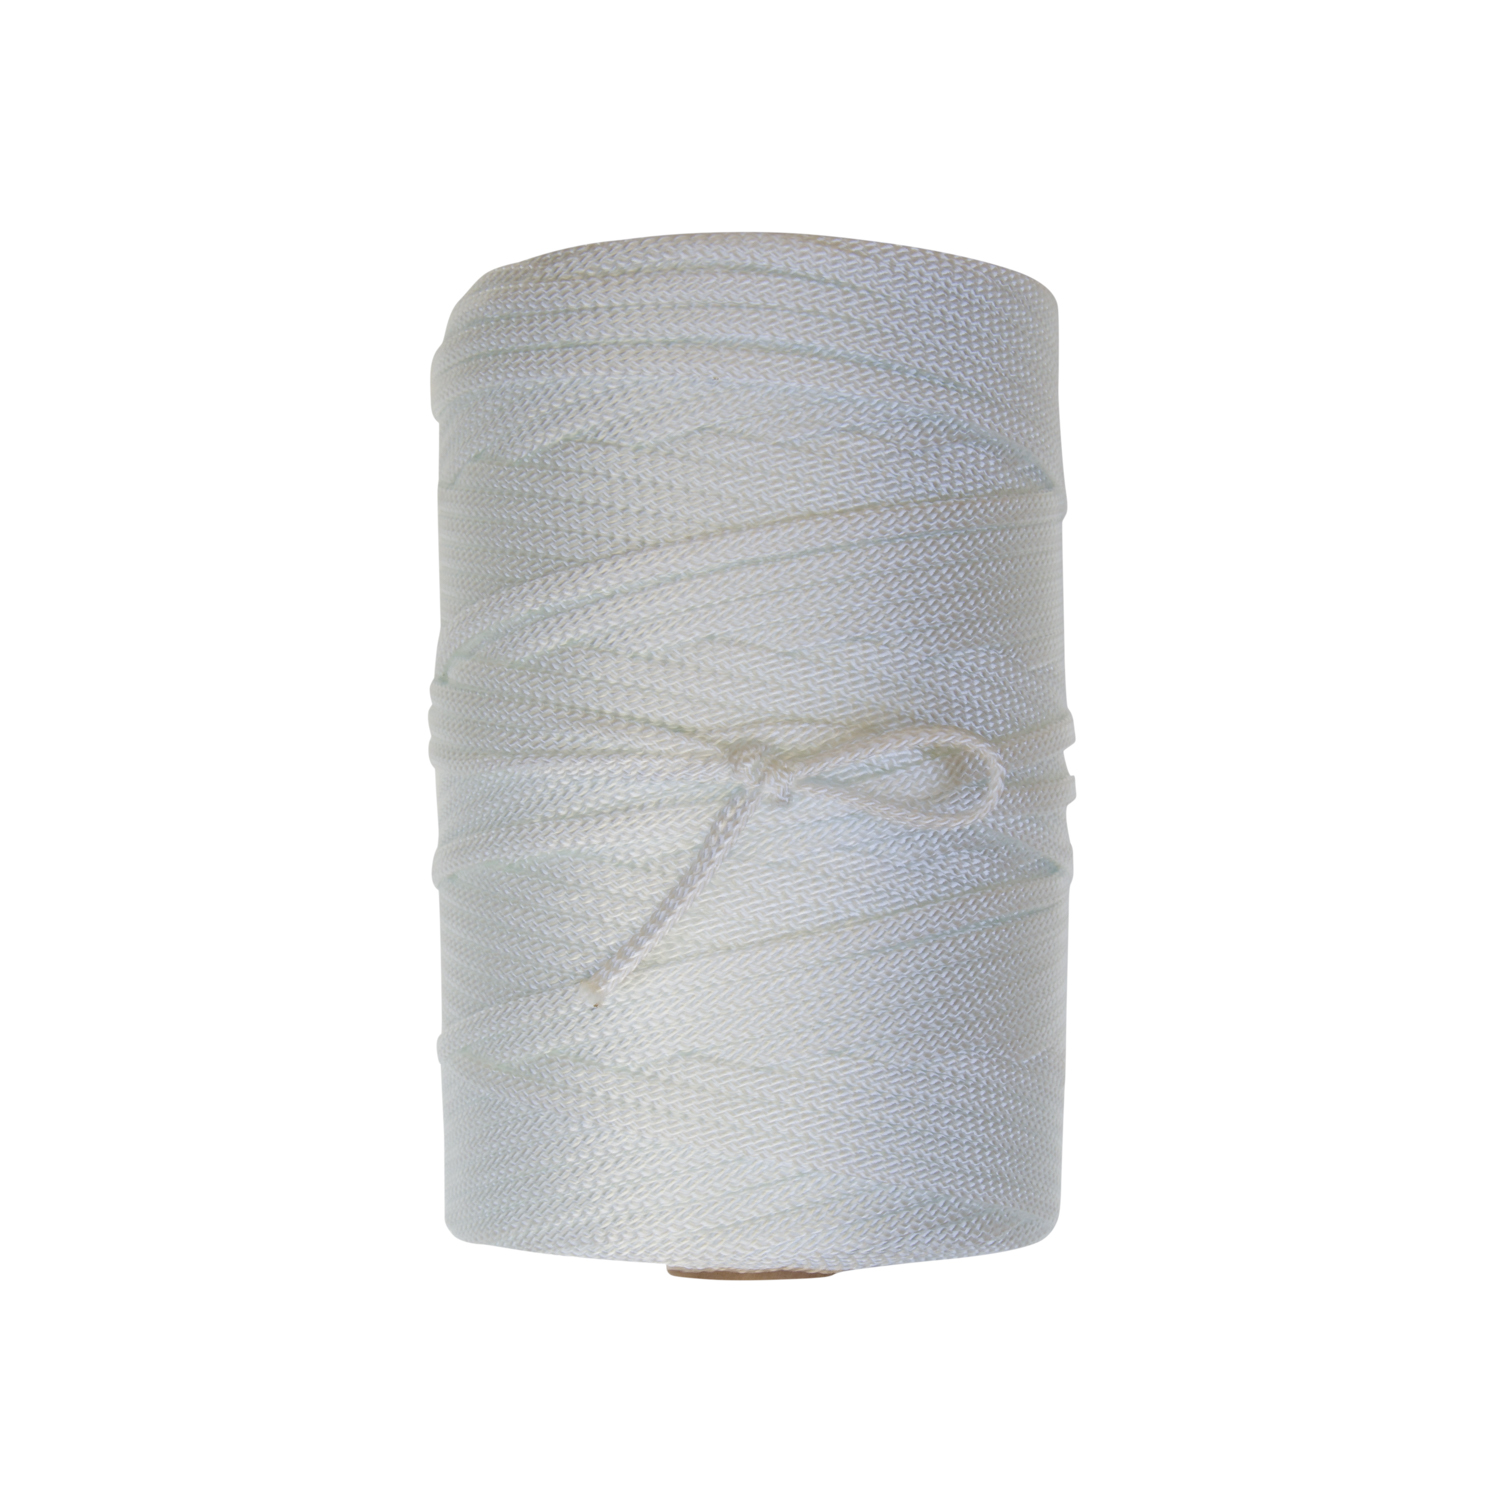 Nylon Flat Cord - Flat braided nylon in a 16 carrier construction for specialty uses in commercial, industrial, and recreational applications. Available in natural white and in basic perma-color nylons.